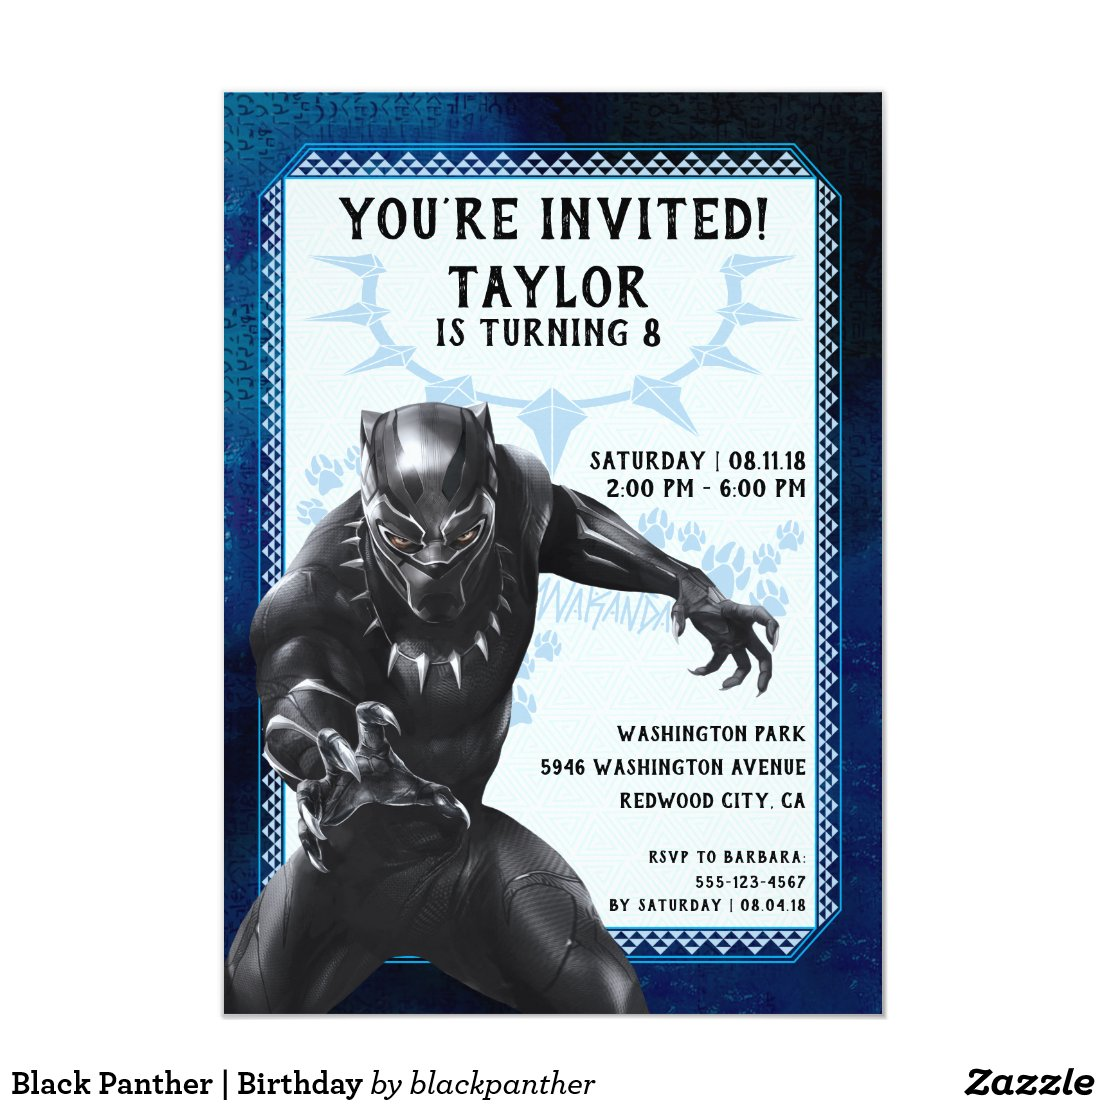 Black Panther | Birthday Card